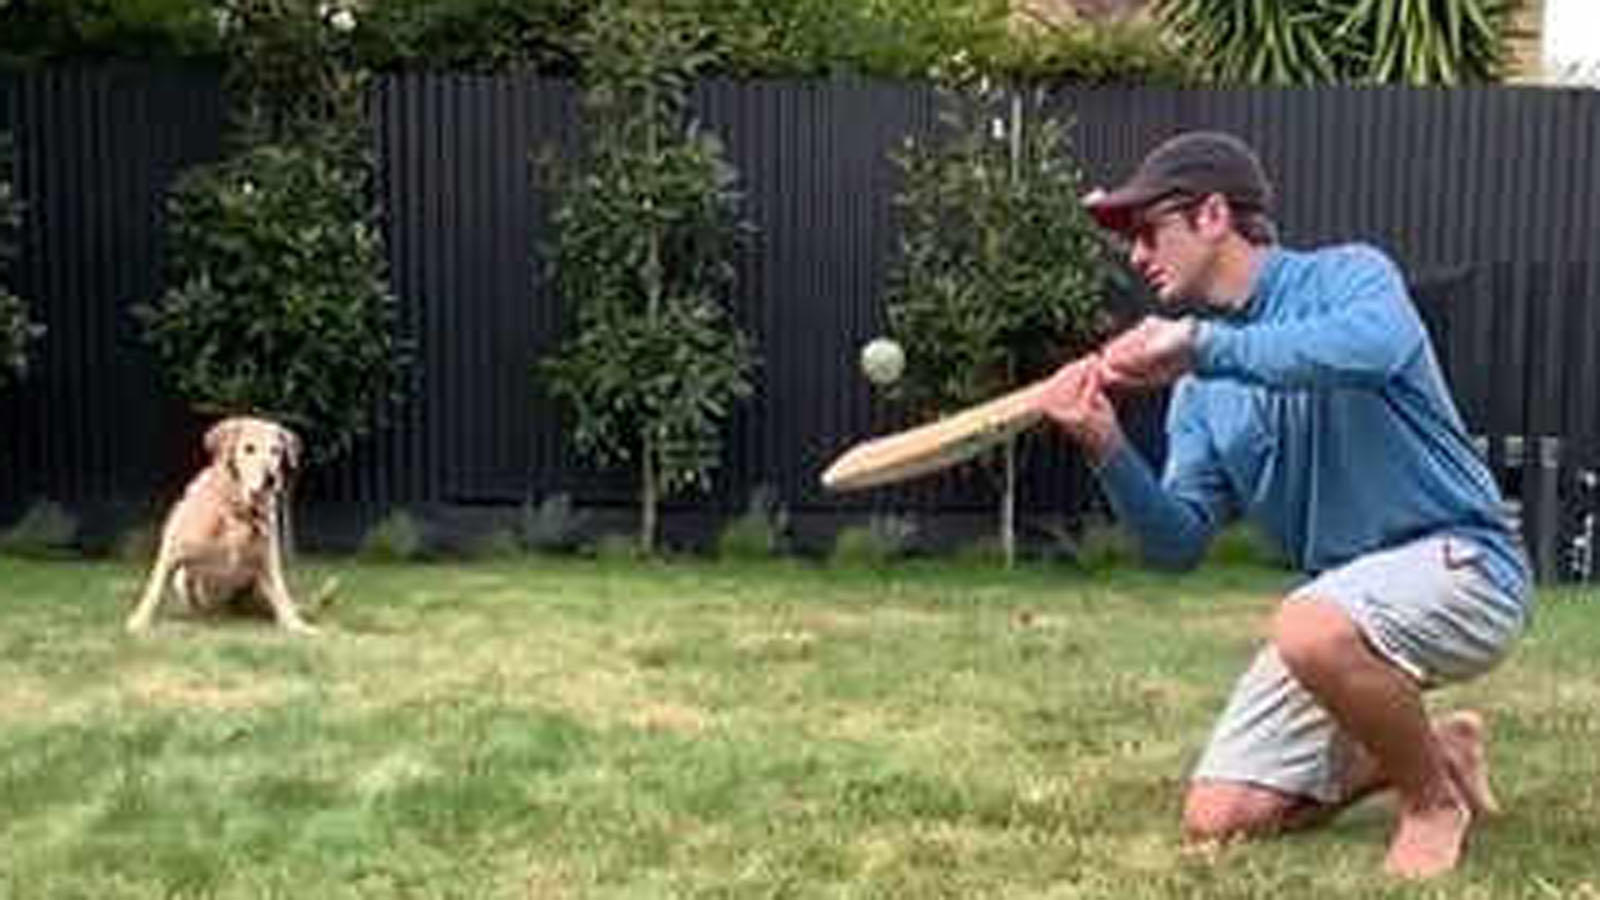 new-zealand-skipper-kane-williamson-gives-pet-dog-slip-catching-practice